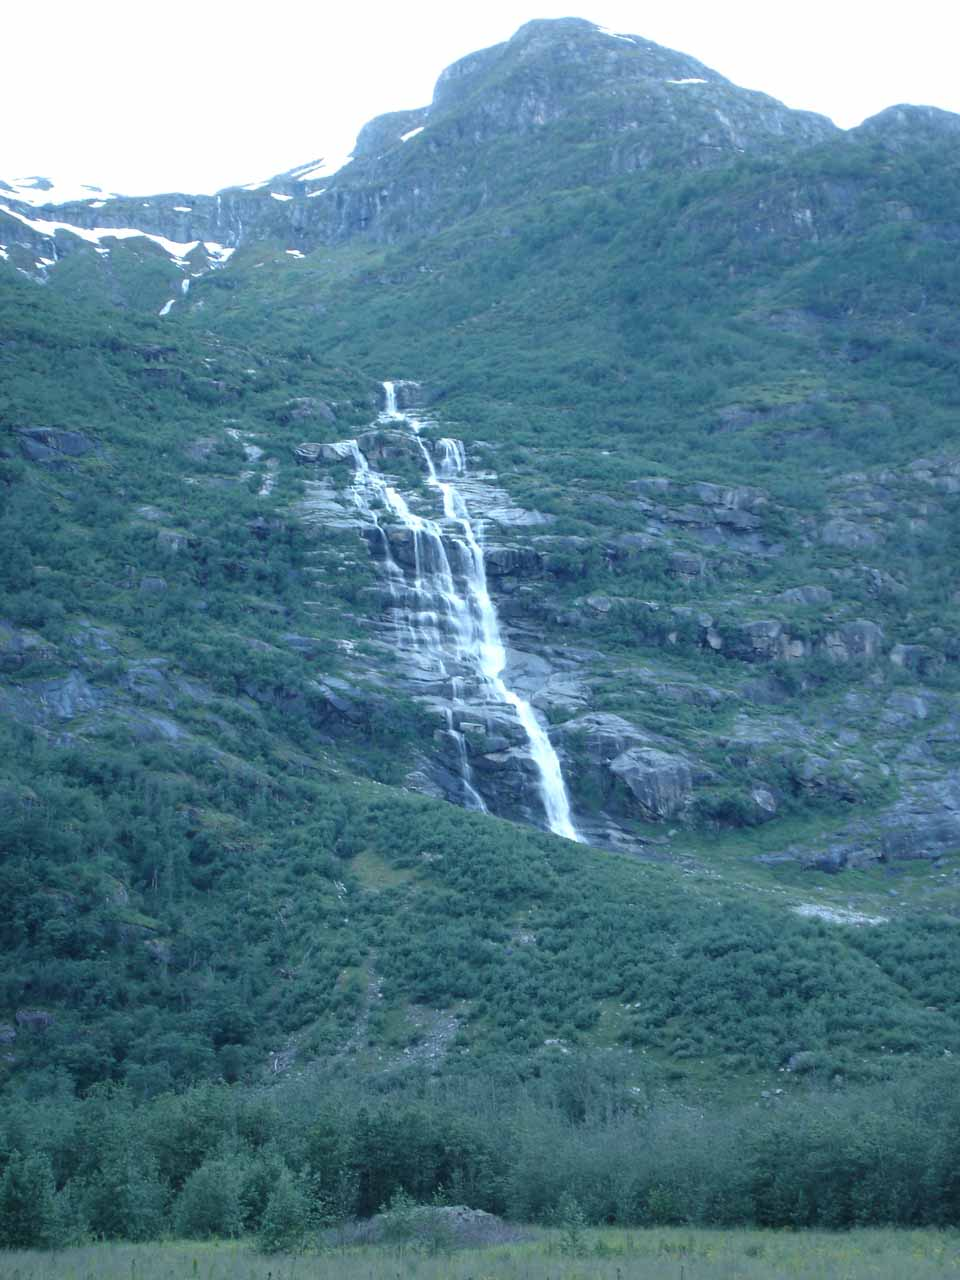 As we were heading back out of Oldedalen Valley, we started paying more attention to the waterfalls around us.  This one was either Melkevollfossen or the one before it just after Volefossen on the east-facing wall